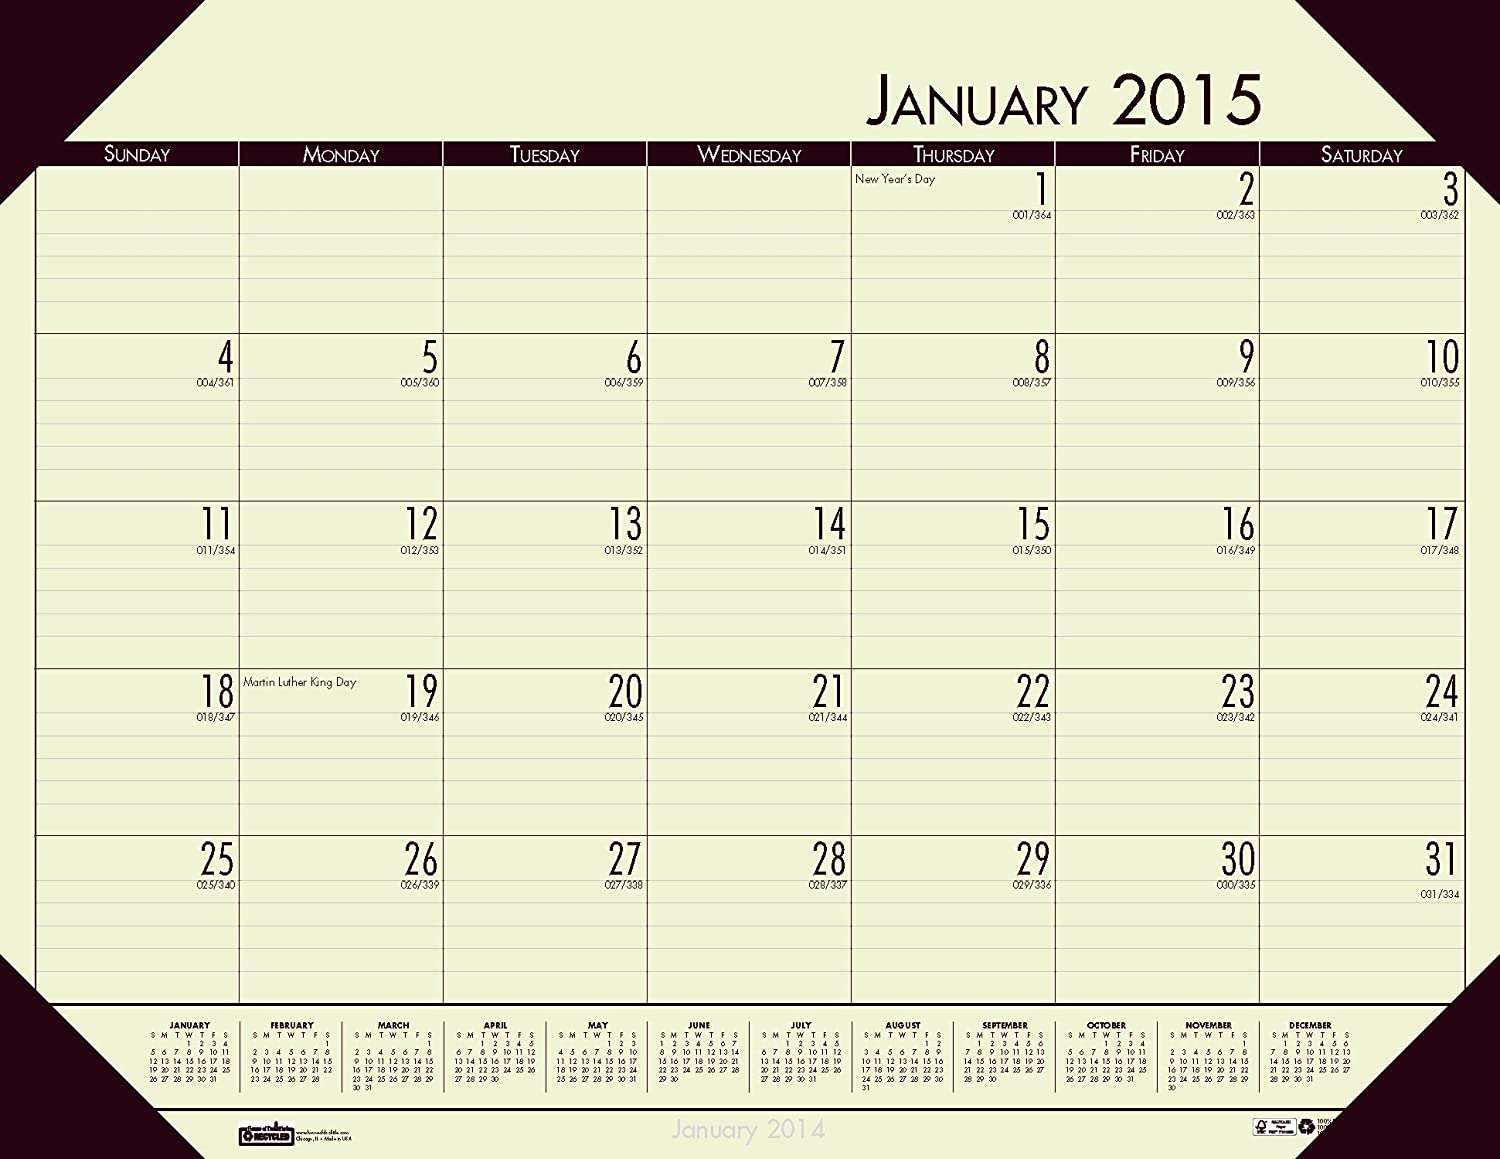 House of Doolittle Doolittle Doolittle EcoTone Tan Desk Pad Calendar 22 x 17 Inches 12 Months January 2015 to December 2015 Recycled (HOD12443) by House of Doolittle B00K23DOZS | Marke